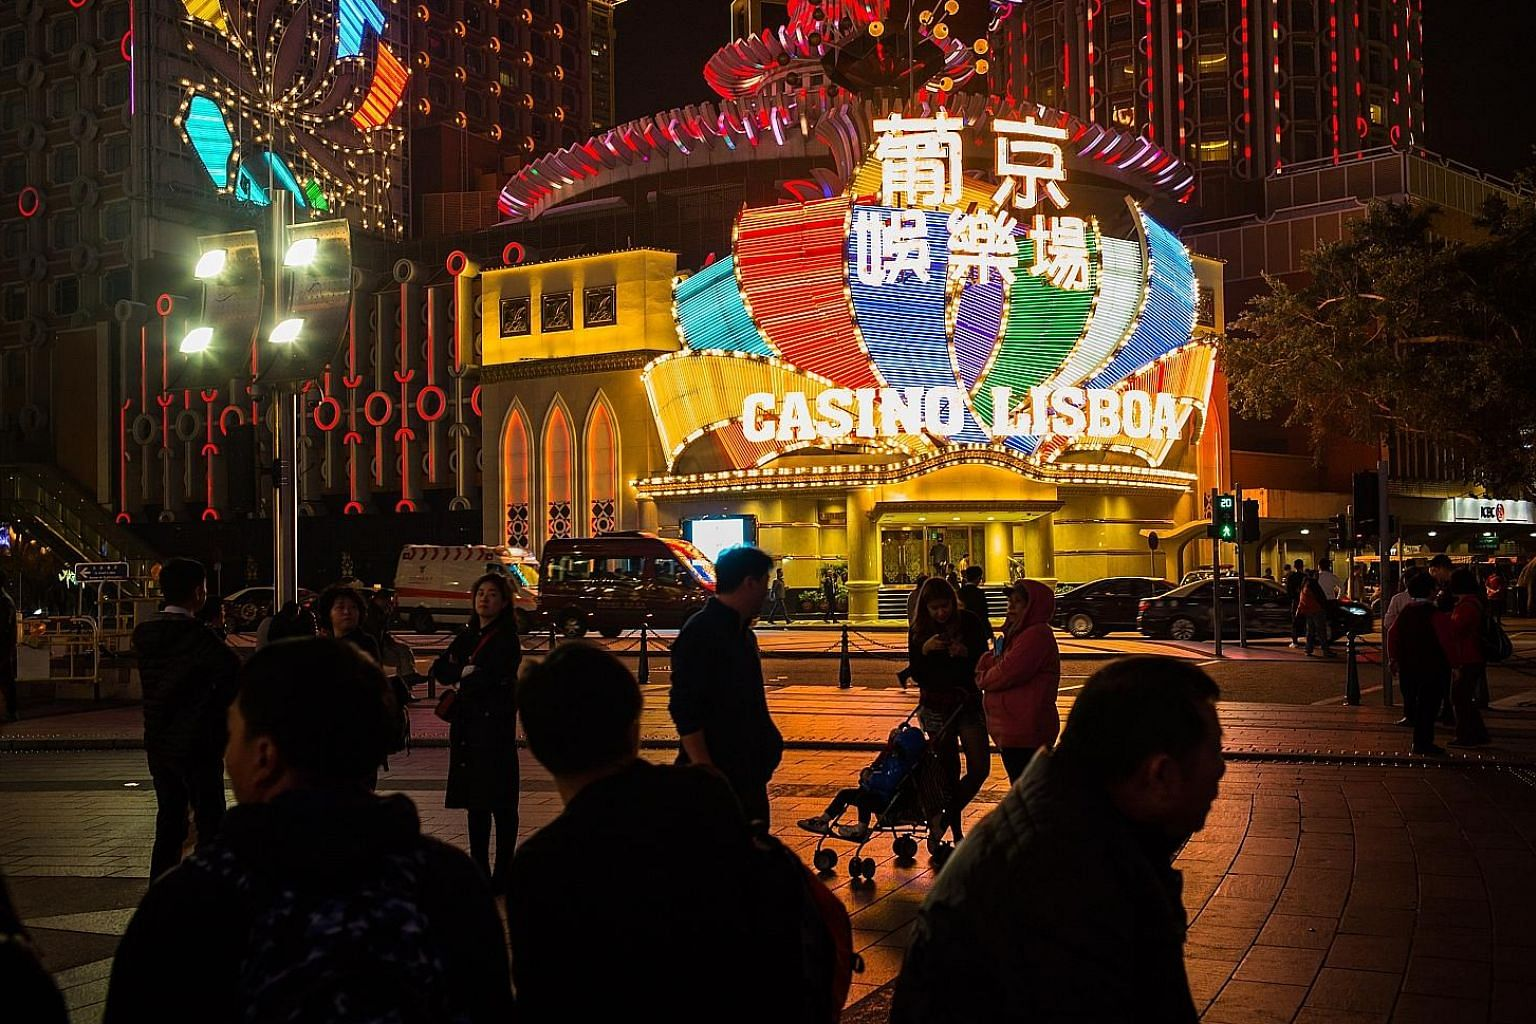 Macau gambling tycoon Stanley Ho will hand over the reins of his flagship casino empire SJM Holdings, which operates casinos like the Casino Grand Lisboa in Macau, to his daughter, Ms Daisy Ho.